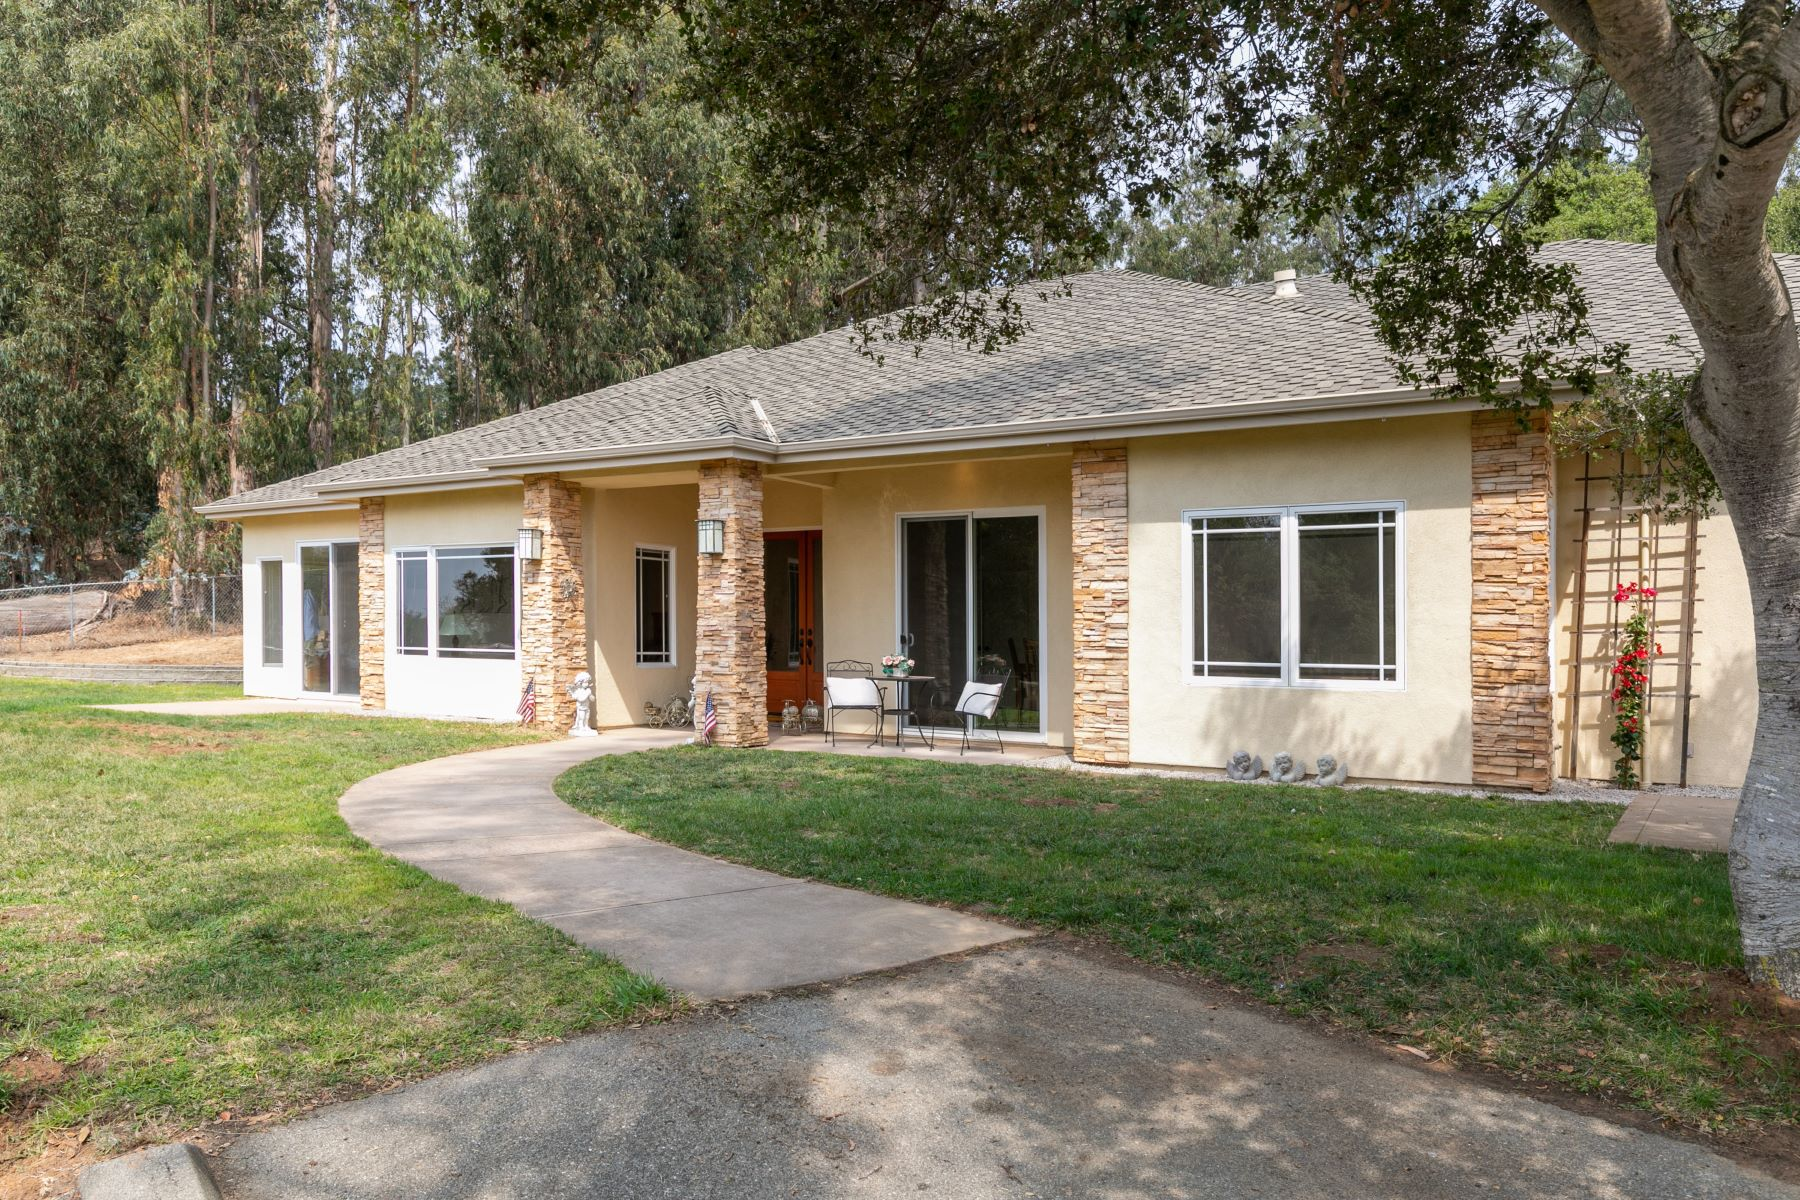 Single Family Homes for Active at Wonderful Rural Retreat with Acreage 9406 Hawk Drive Salinas, California 93907 United States